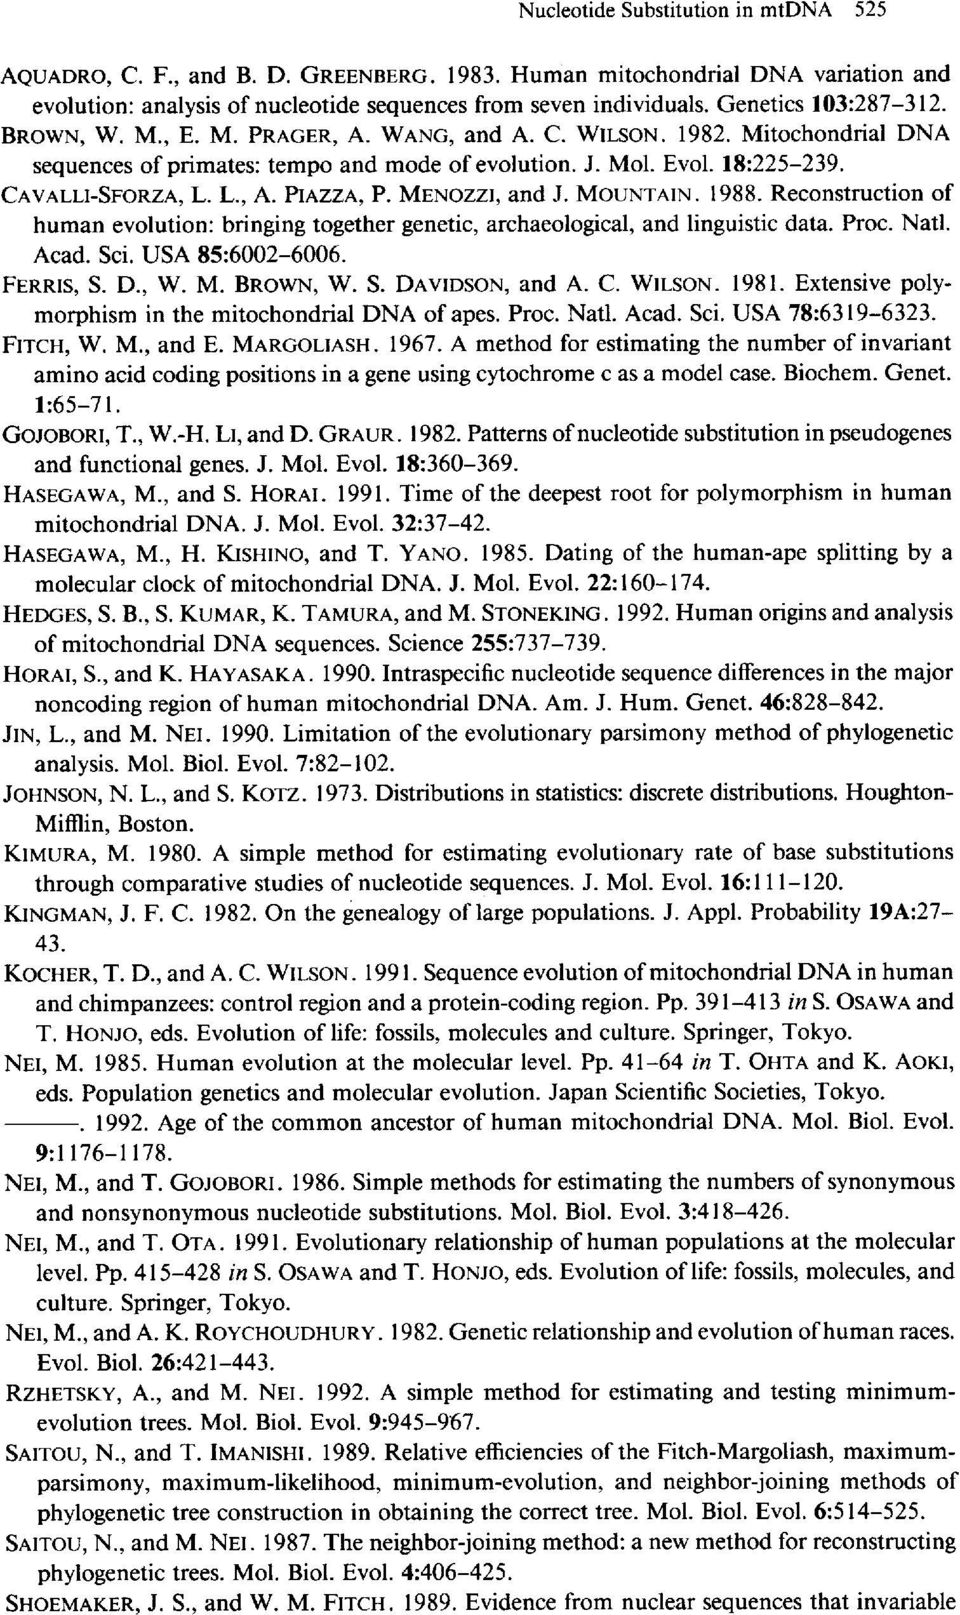 L., A. PIAZZA, P. MENOZZI, and J. MOUNTAIN. 1988. Reconstruction of human evolution: bringing together genetic, archaeological, and linguistic data. Proc. Natl. Acad. Sci. USA 85:6002-6006. FERRIS, S.